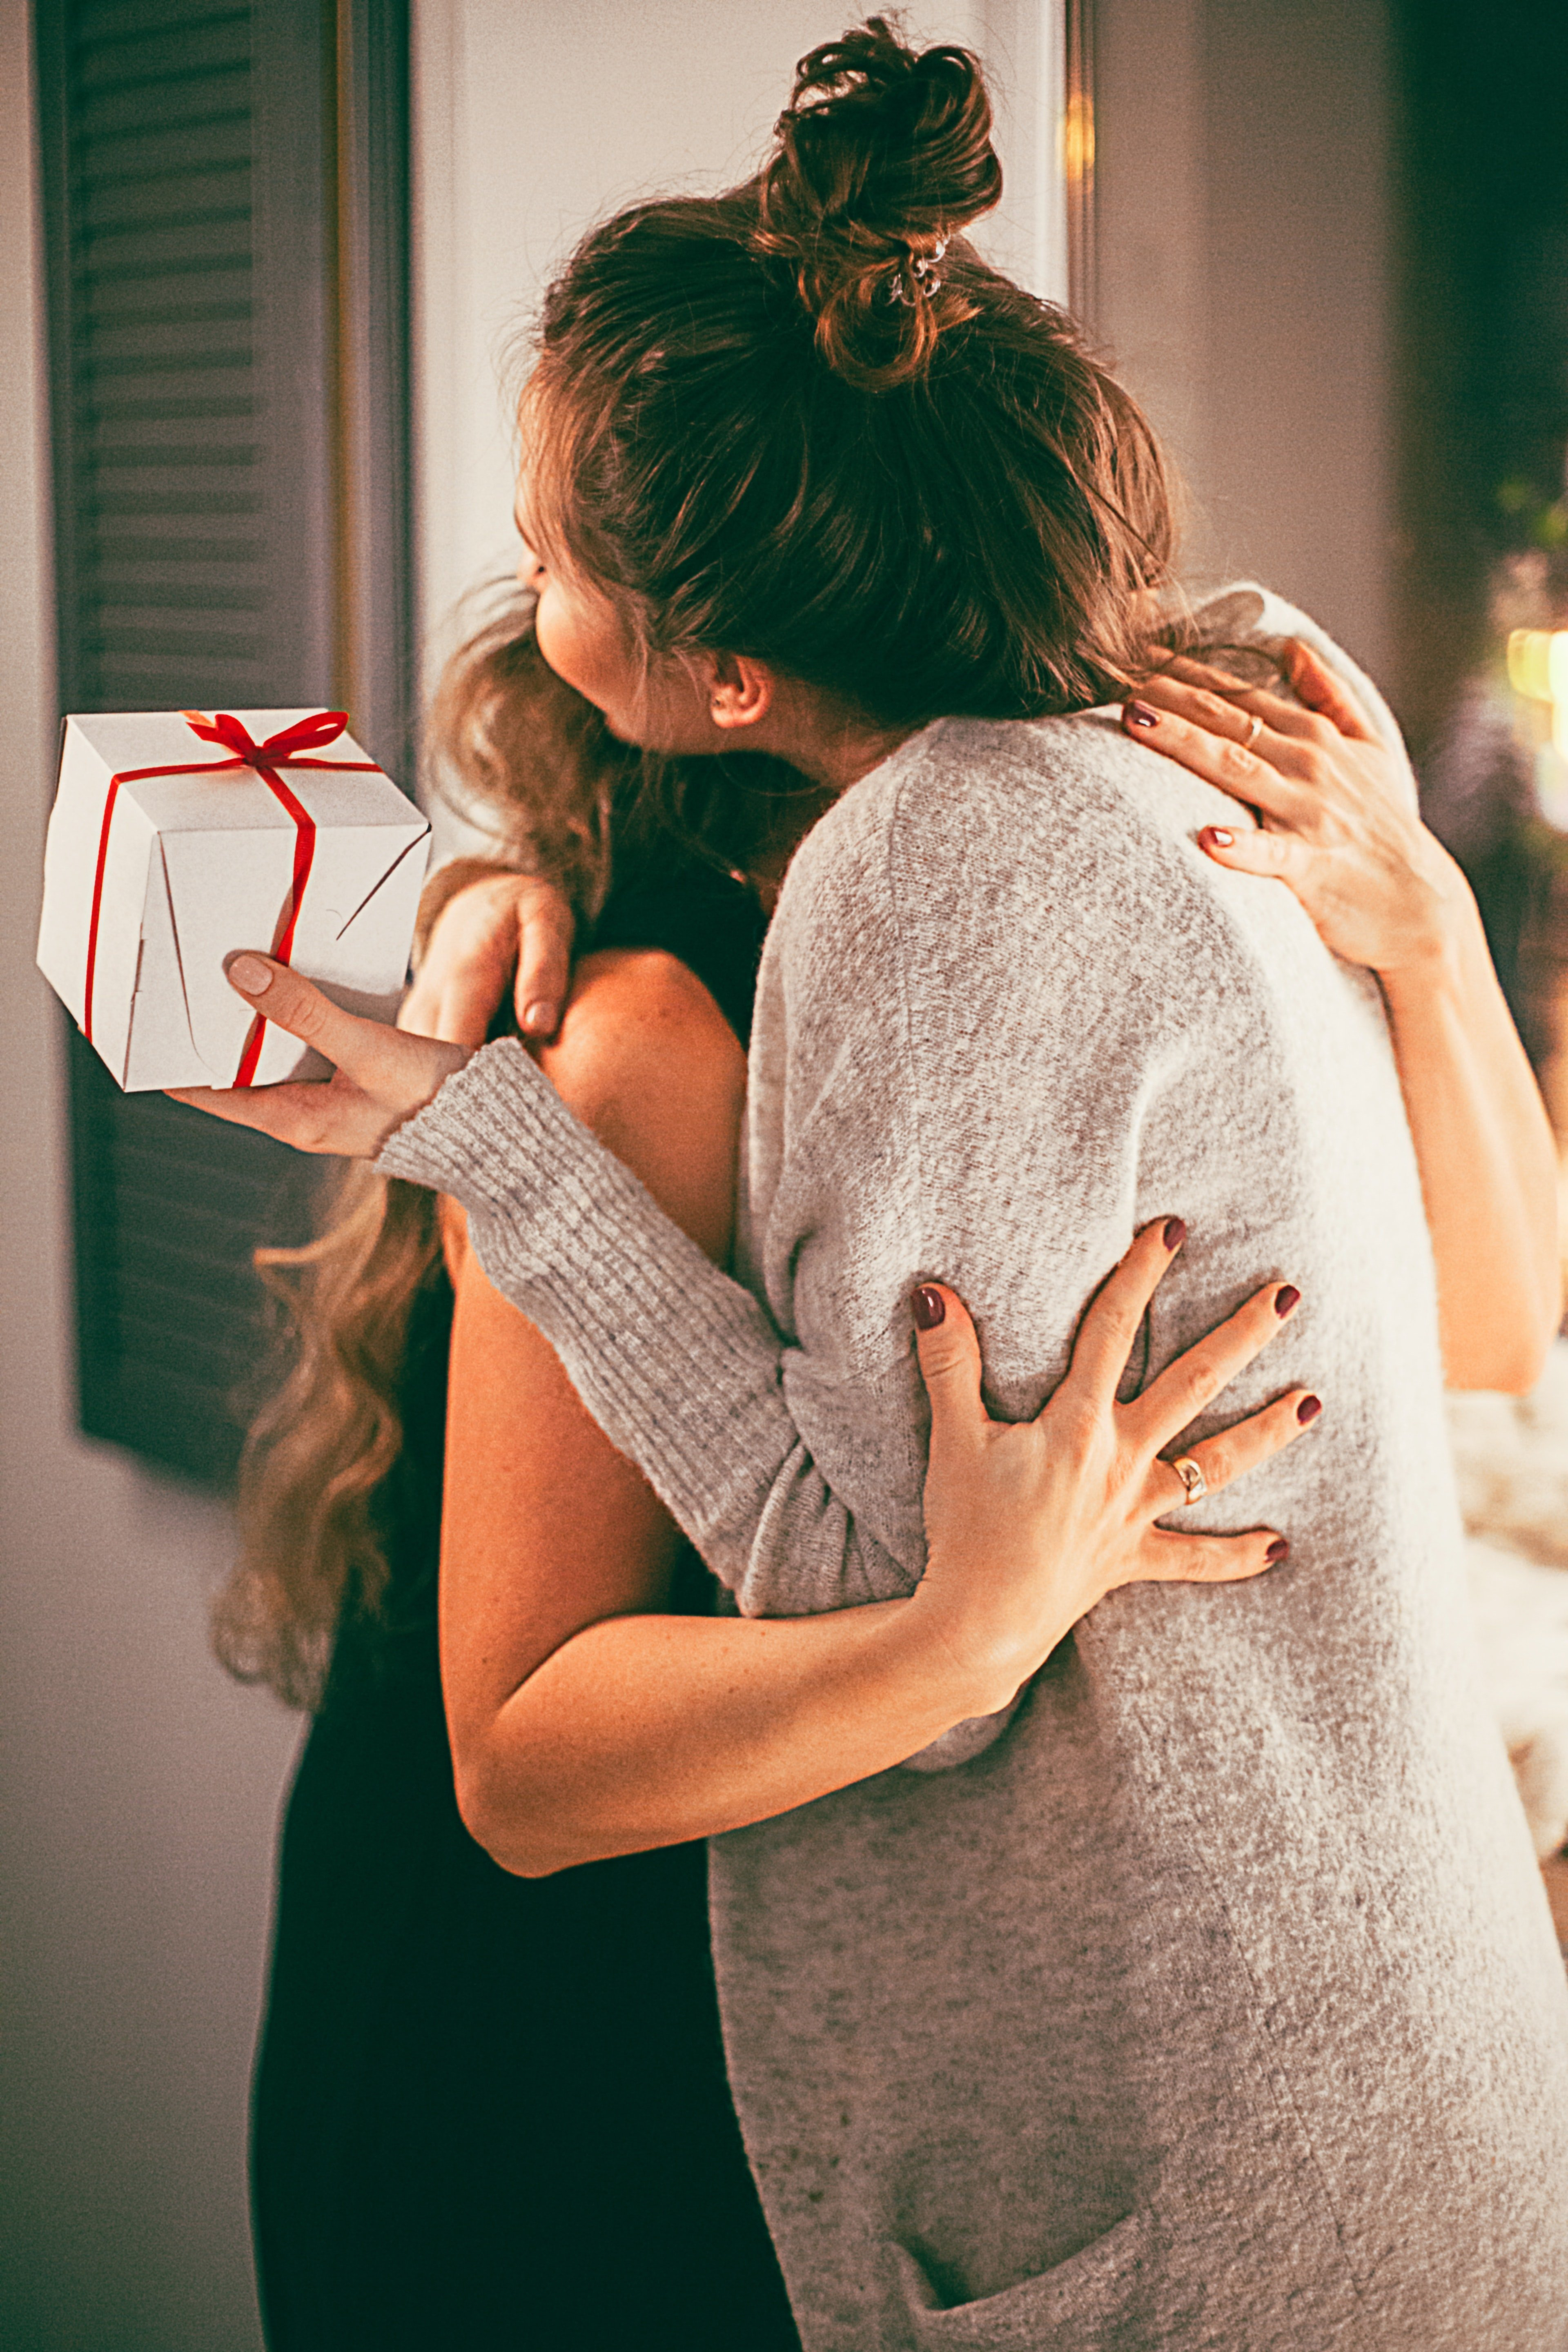 Two women embracing each other with gifts. | Source: Pixabay